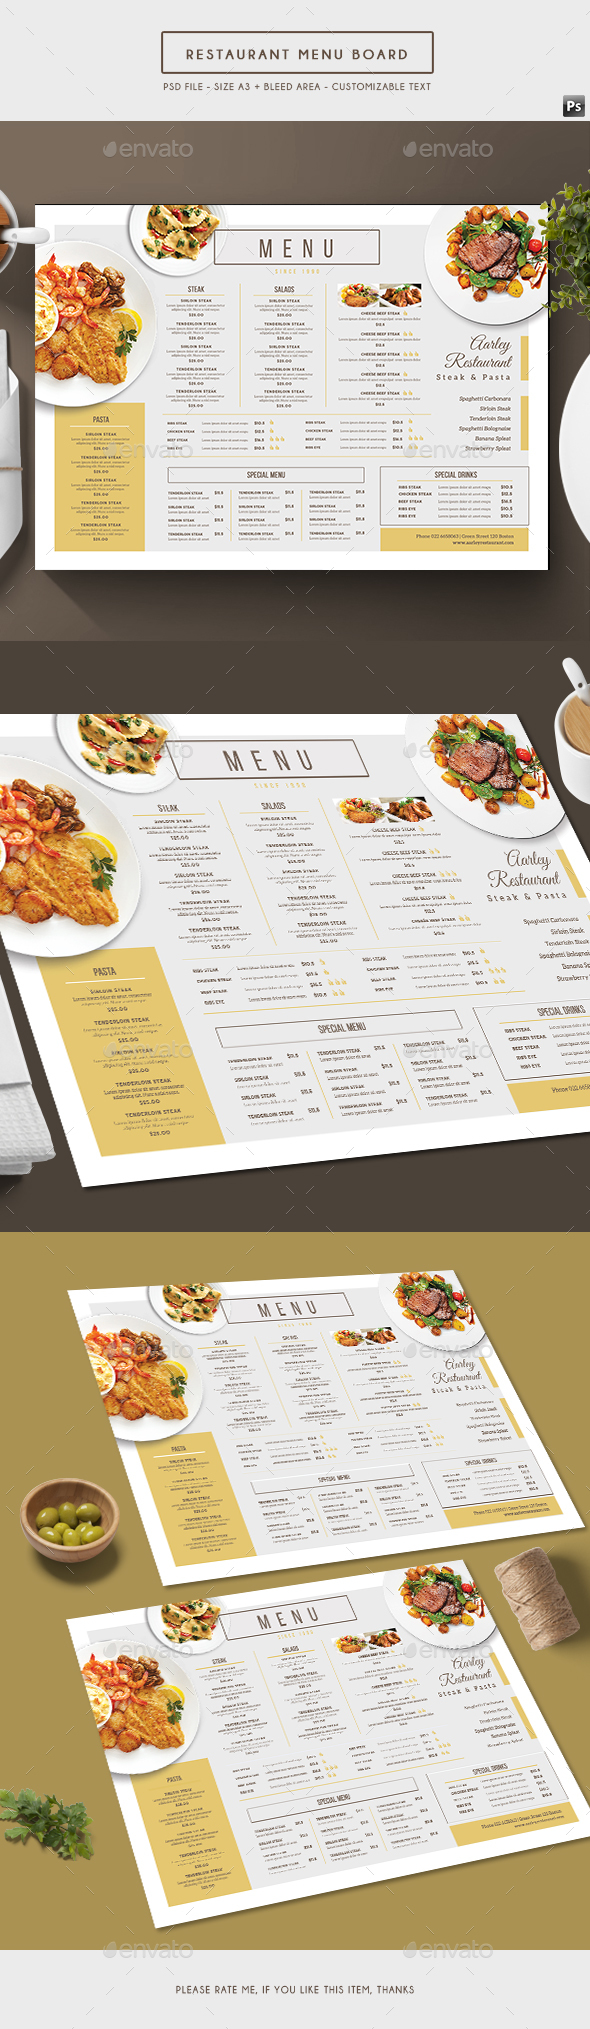 simple restaurant menu board by arifpoernomo graphicriver. Black Bedroom Furniture Sets. Home Design Ideas